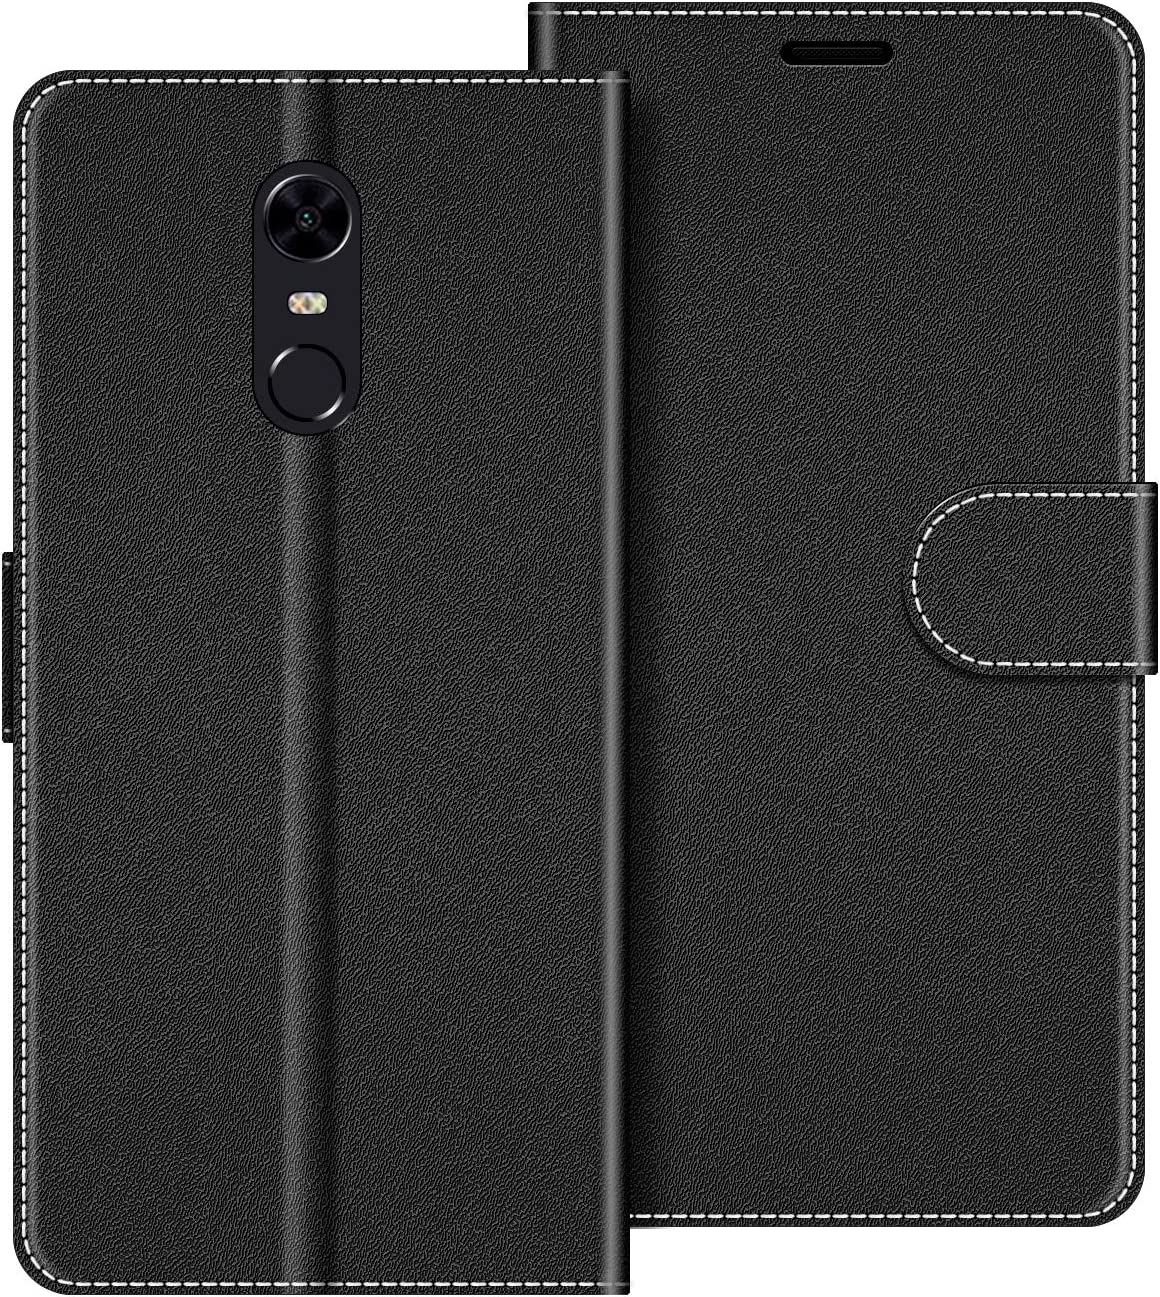 COODIO Funda Xiaomi Redmi 5 Plus con Tapa, Funda Movil Xiaomi Redmi 5 Plus, Funda Libro Xiaomi Redmi 5 Plus Carcasa Magnético Funda para Xiaomi Redmi 5 Plus, Negro